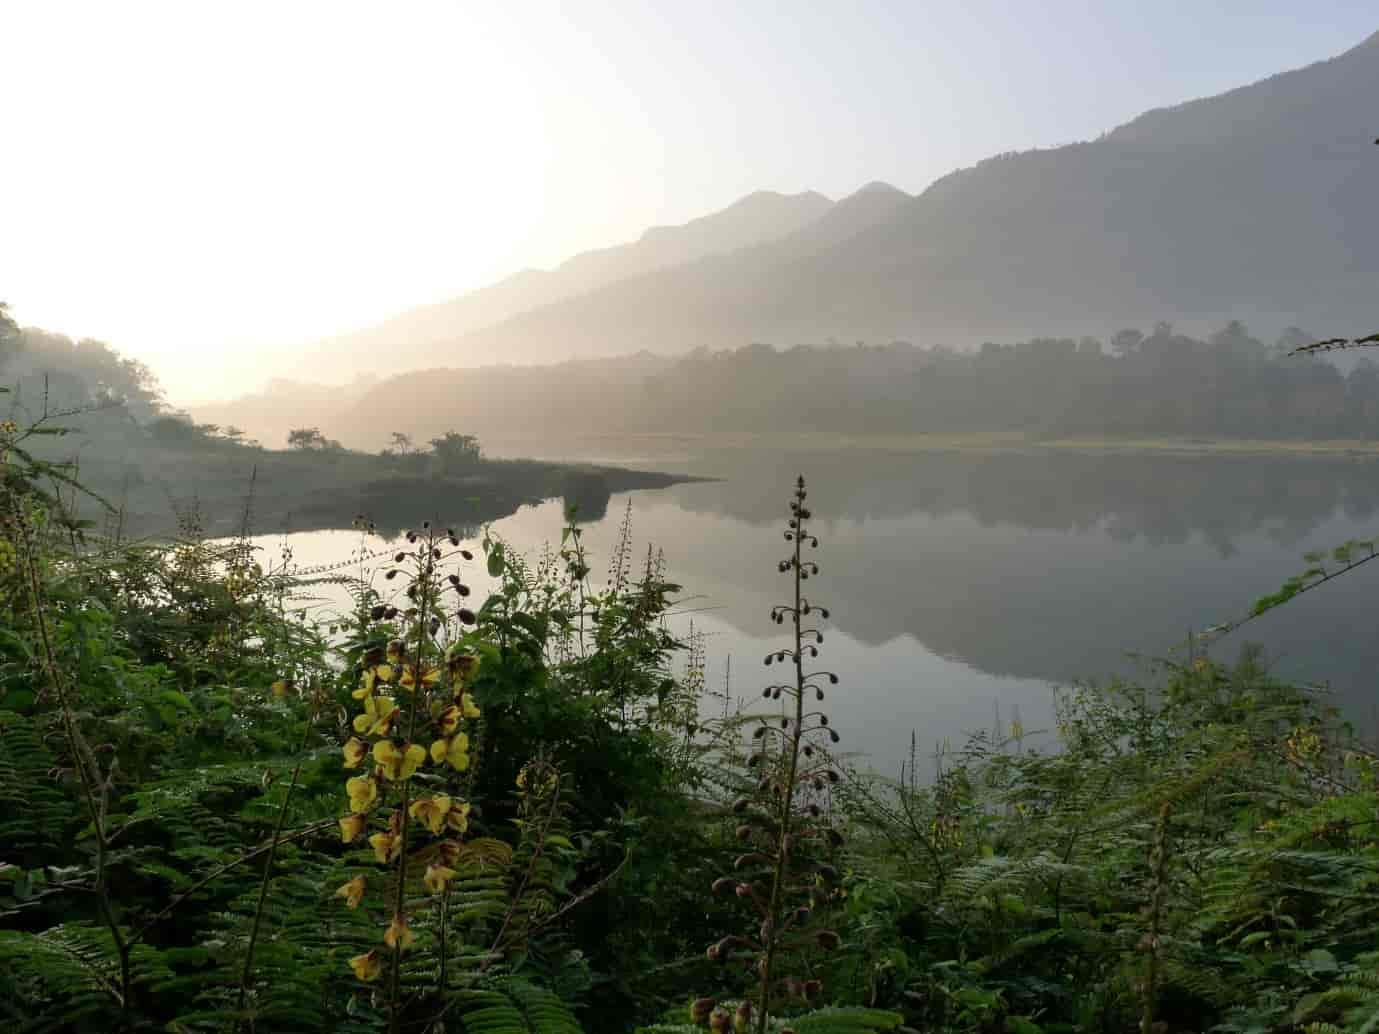 Malankara-Dam-forms-part-of-a-beautiful-landscape-and-the-main-reason-for-its-construction-is-irrigation